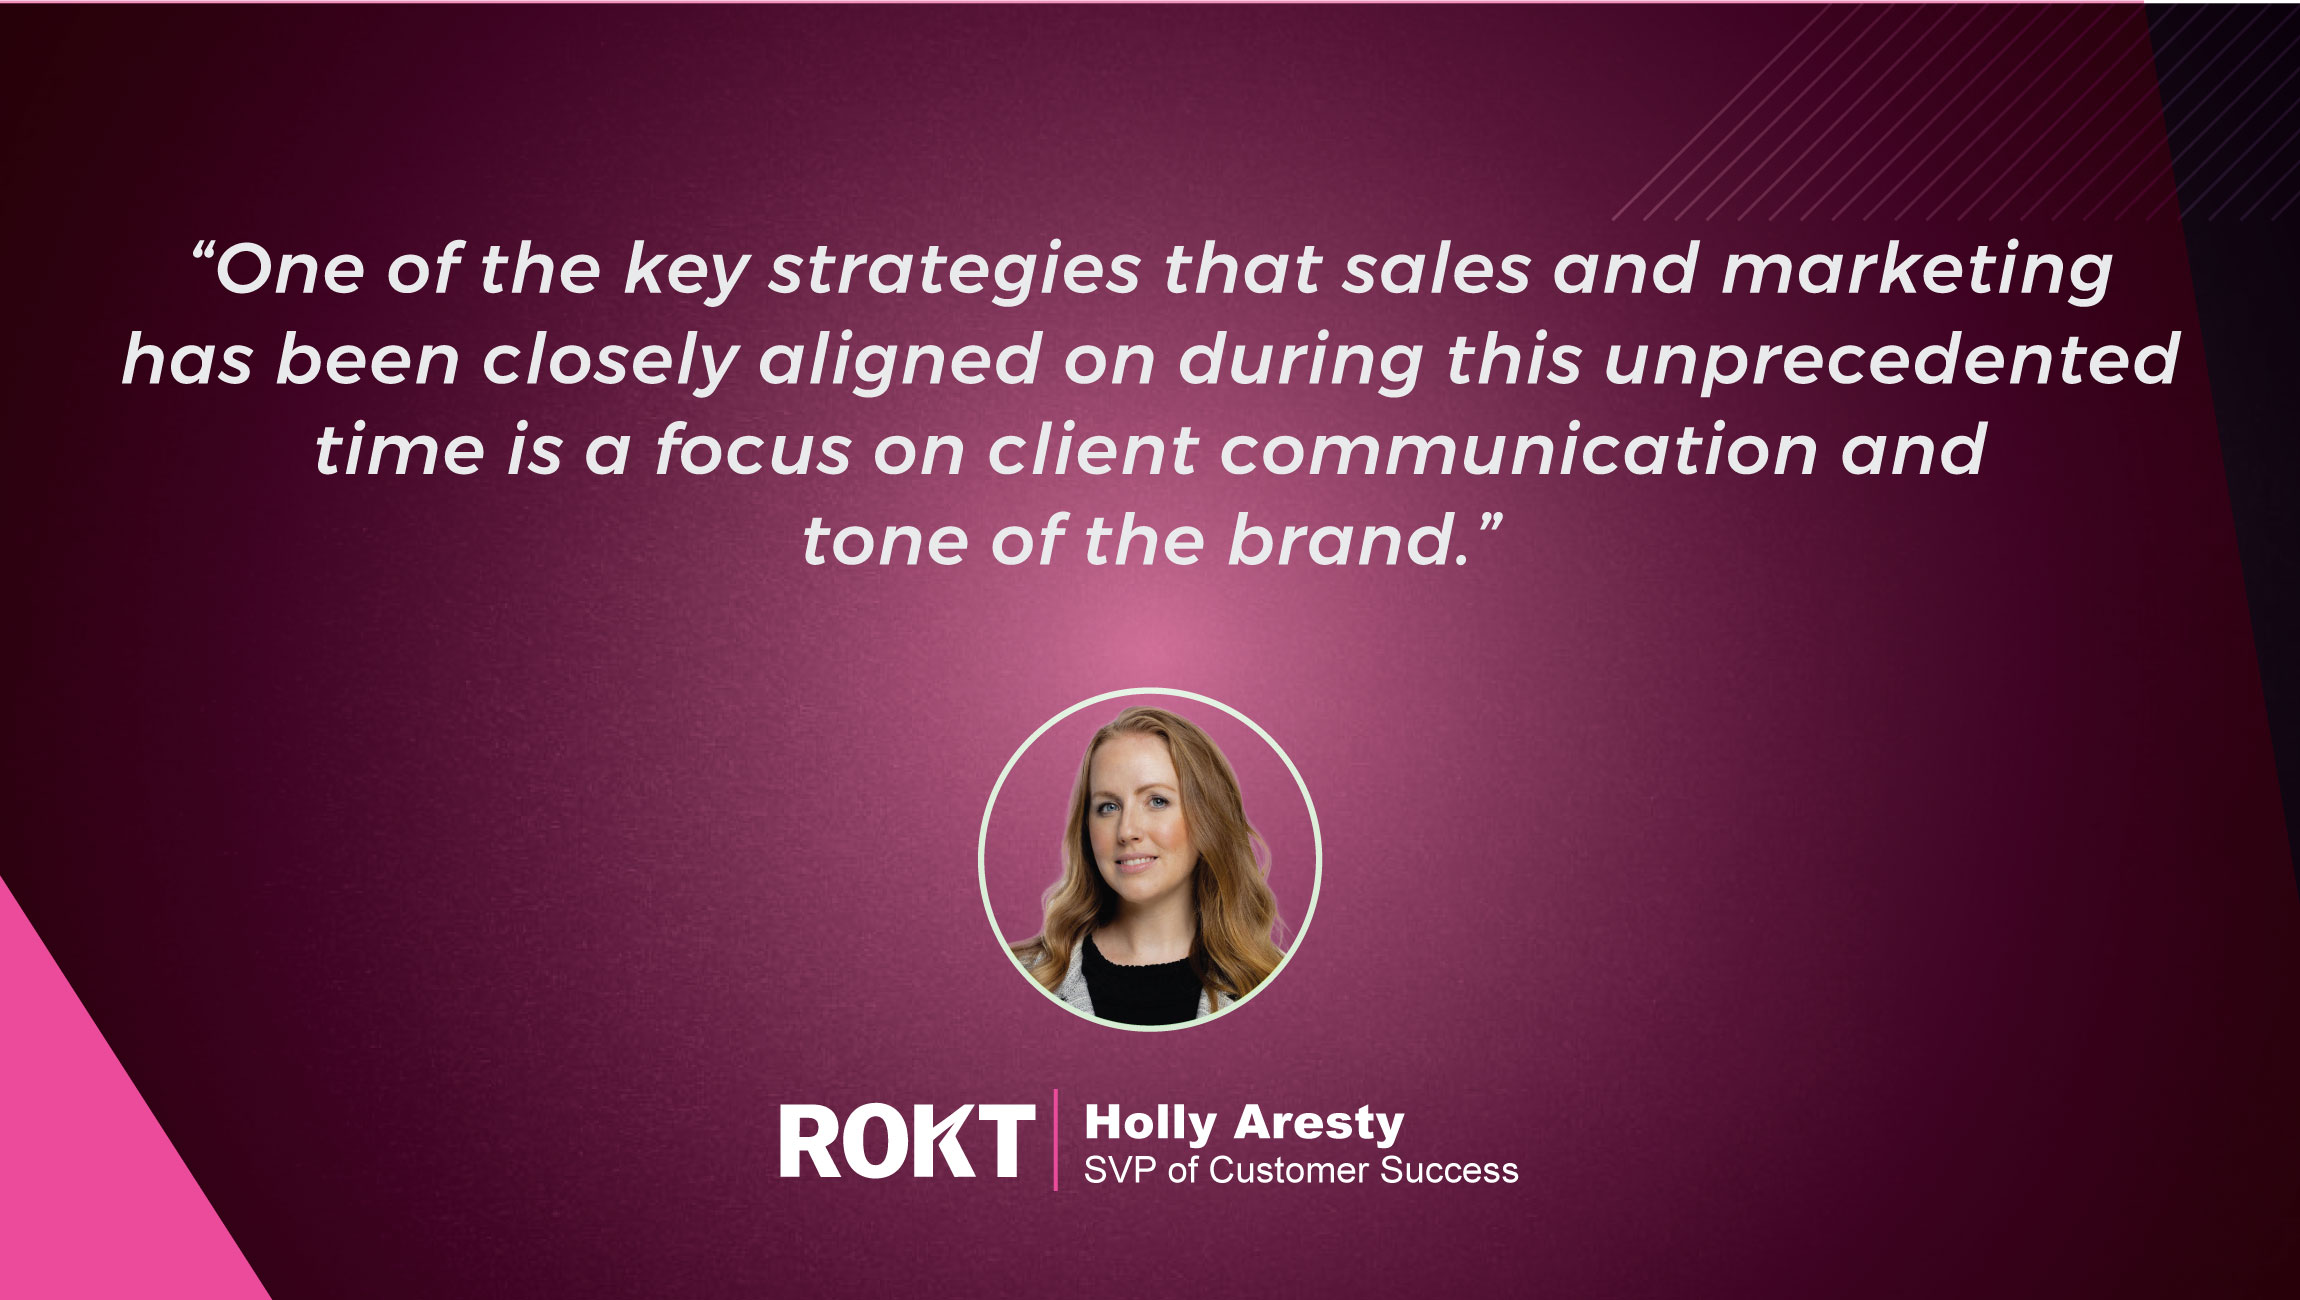 Predictions Series 2021: TechBytes with Holly Aresty, SVP of Customer Success at Rokt